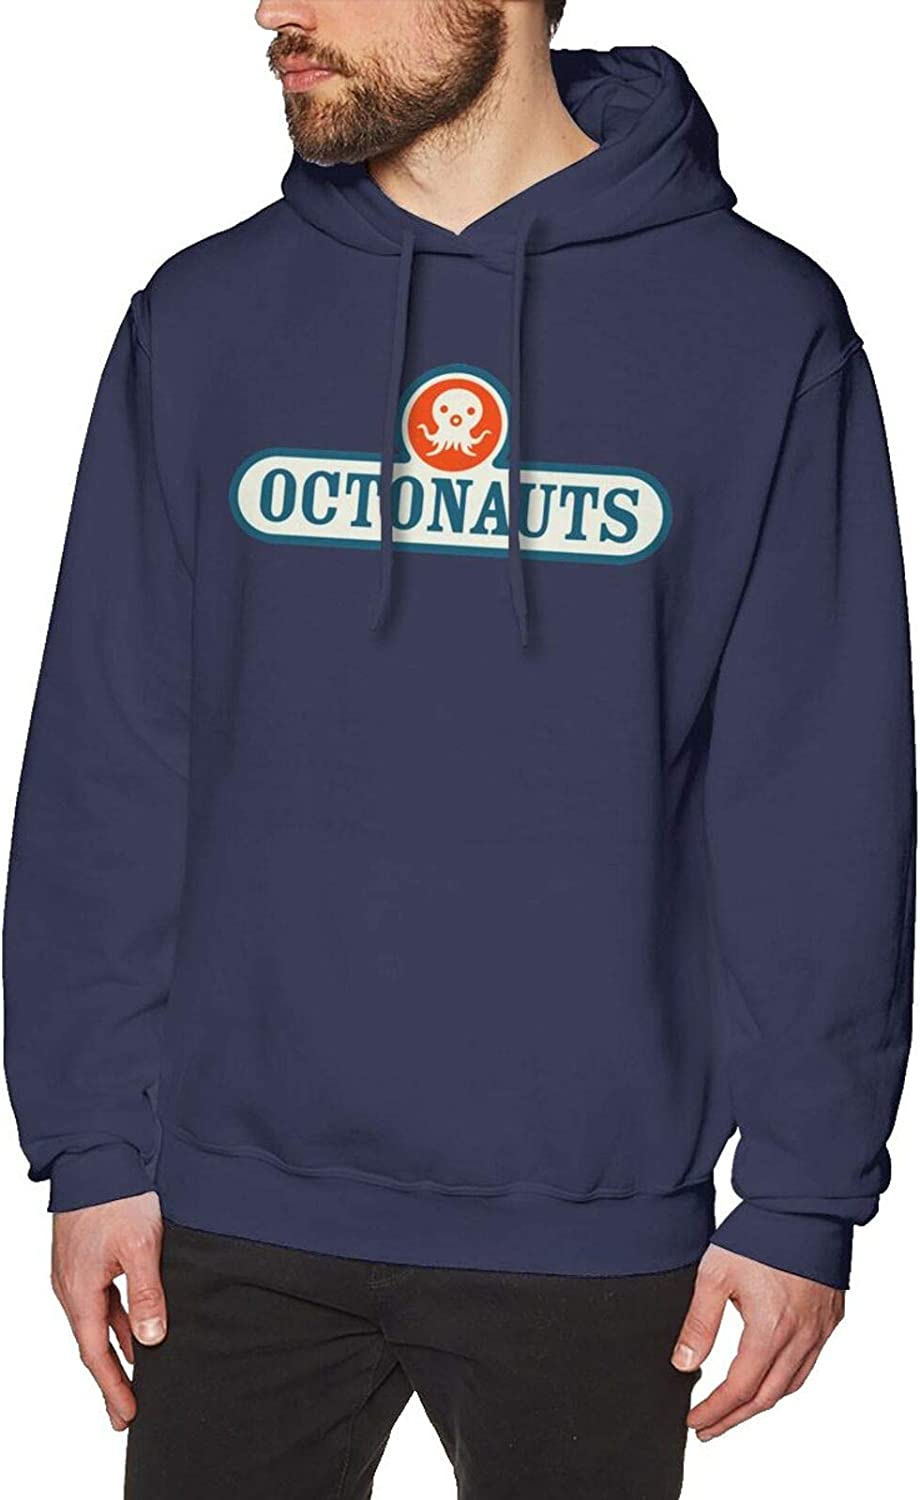 The Octonauts Fashion Men'S Long P Luxury Sleeve Cool Hoodie Limited time for free shipping Sweatshirt